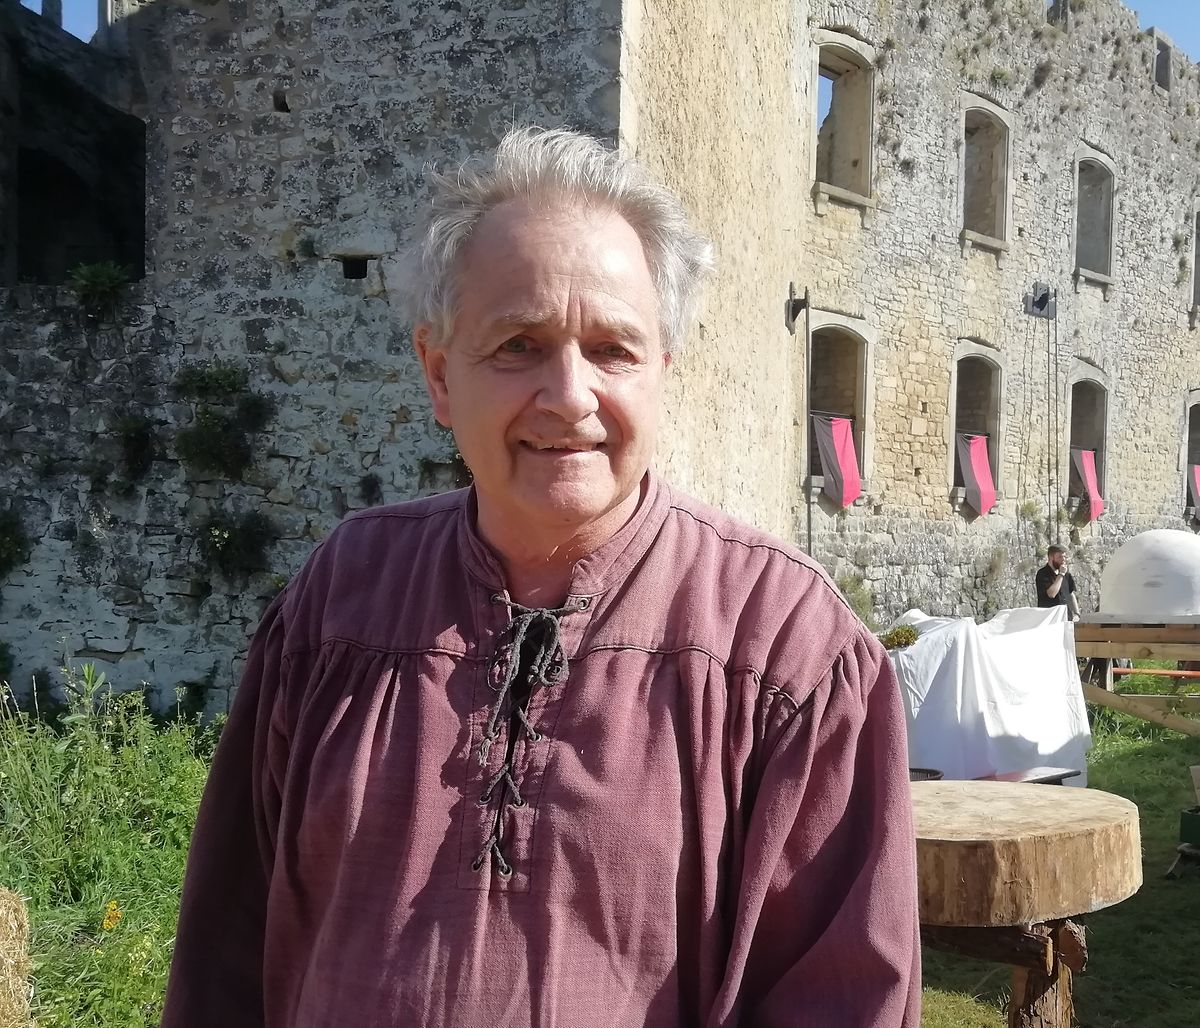 Georges Simon from Friends of Koerich Castle, explains the ruins date back to 1338